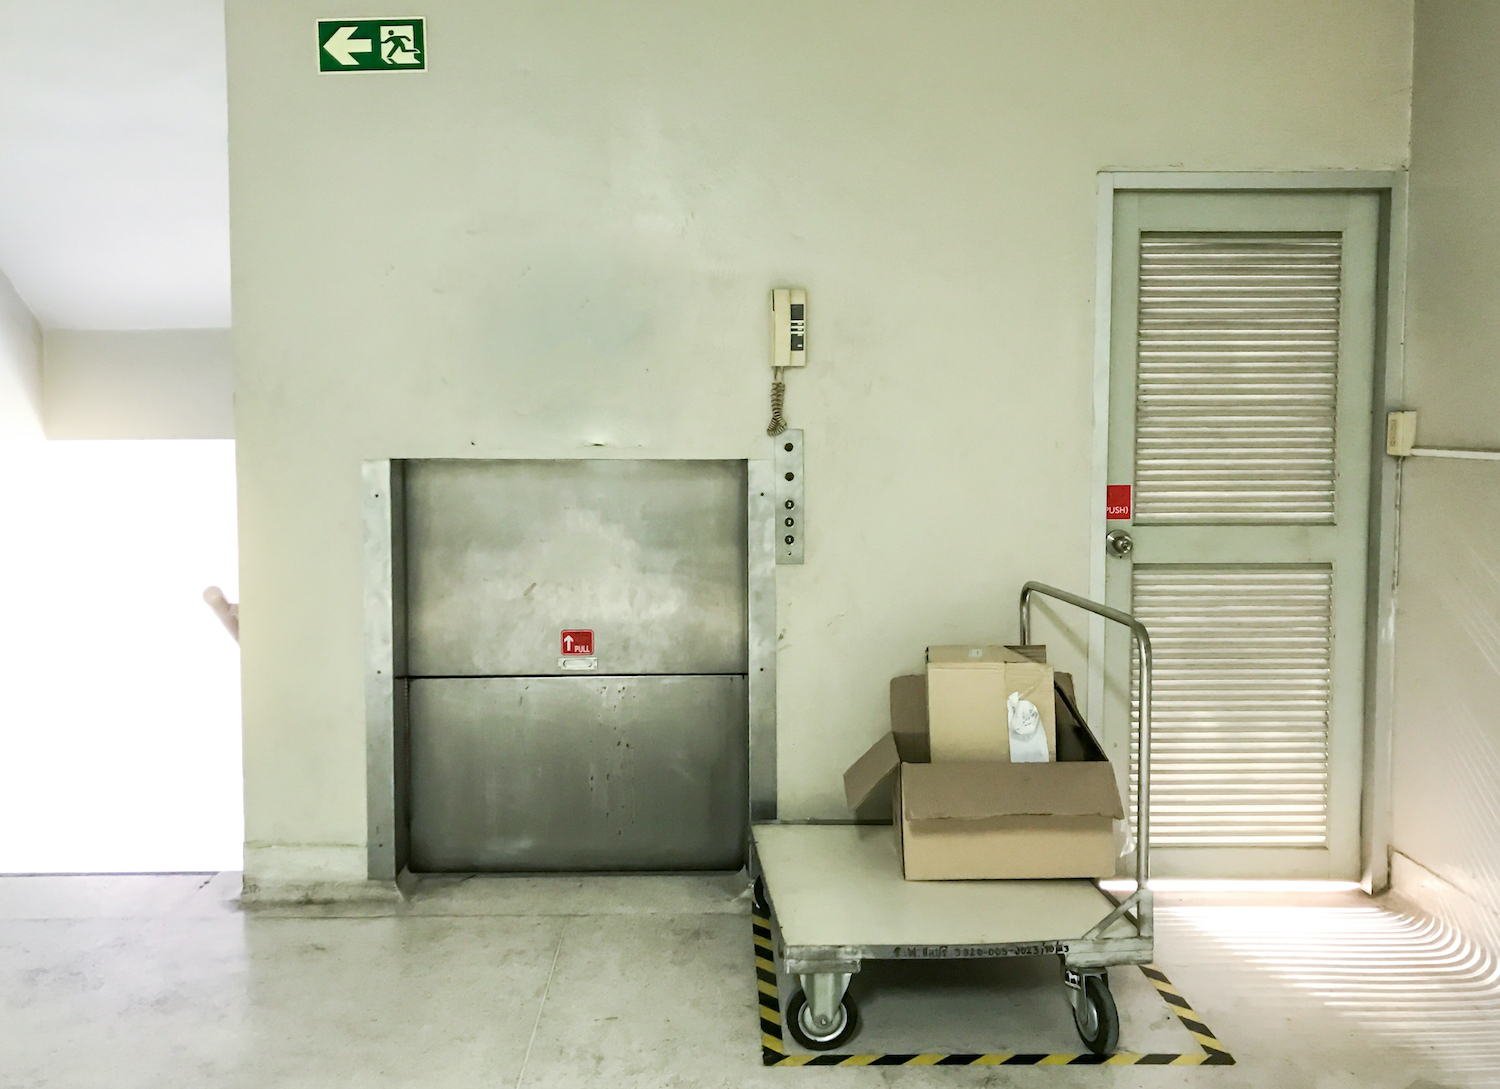 Goods lifts, service lifts and dumb waiters – what can go wrong?